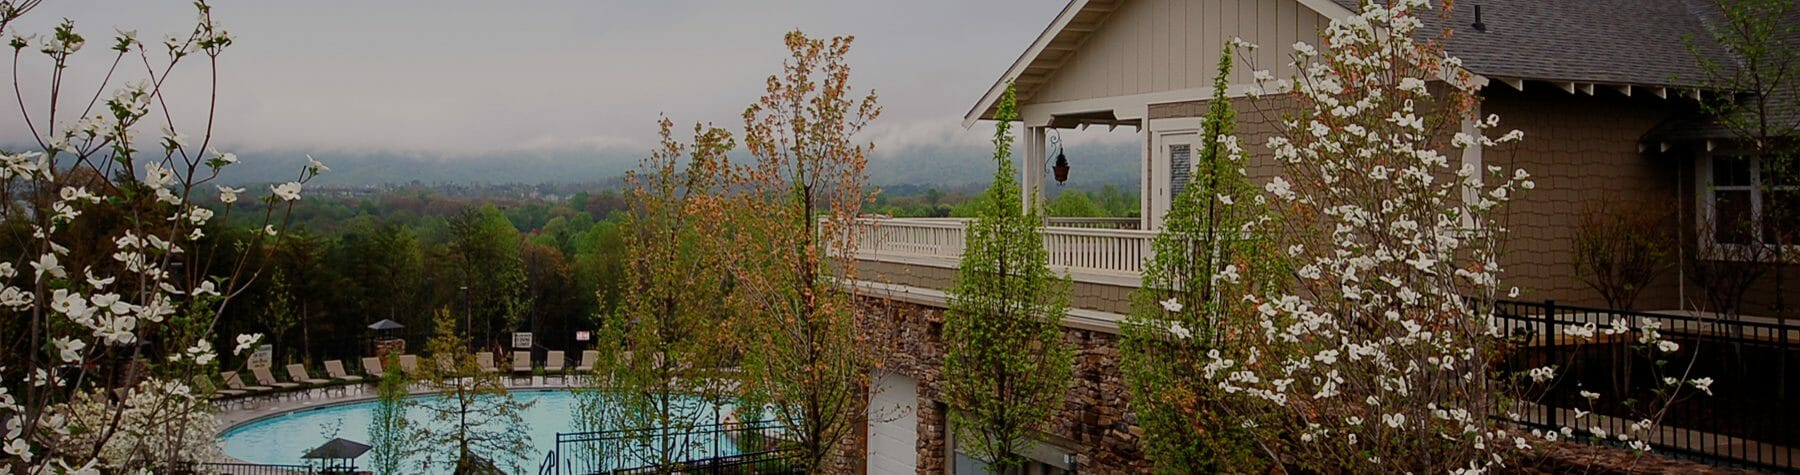 Beautiful Views at Woodlands of Charlottesville Luxury Condo Rentals